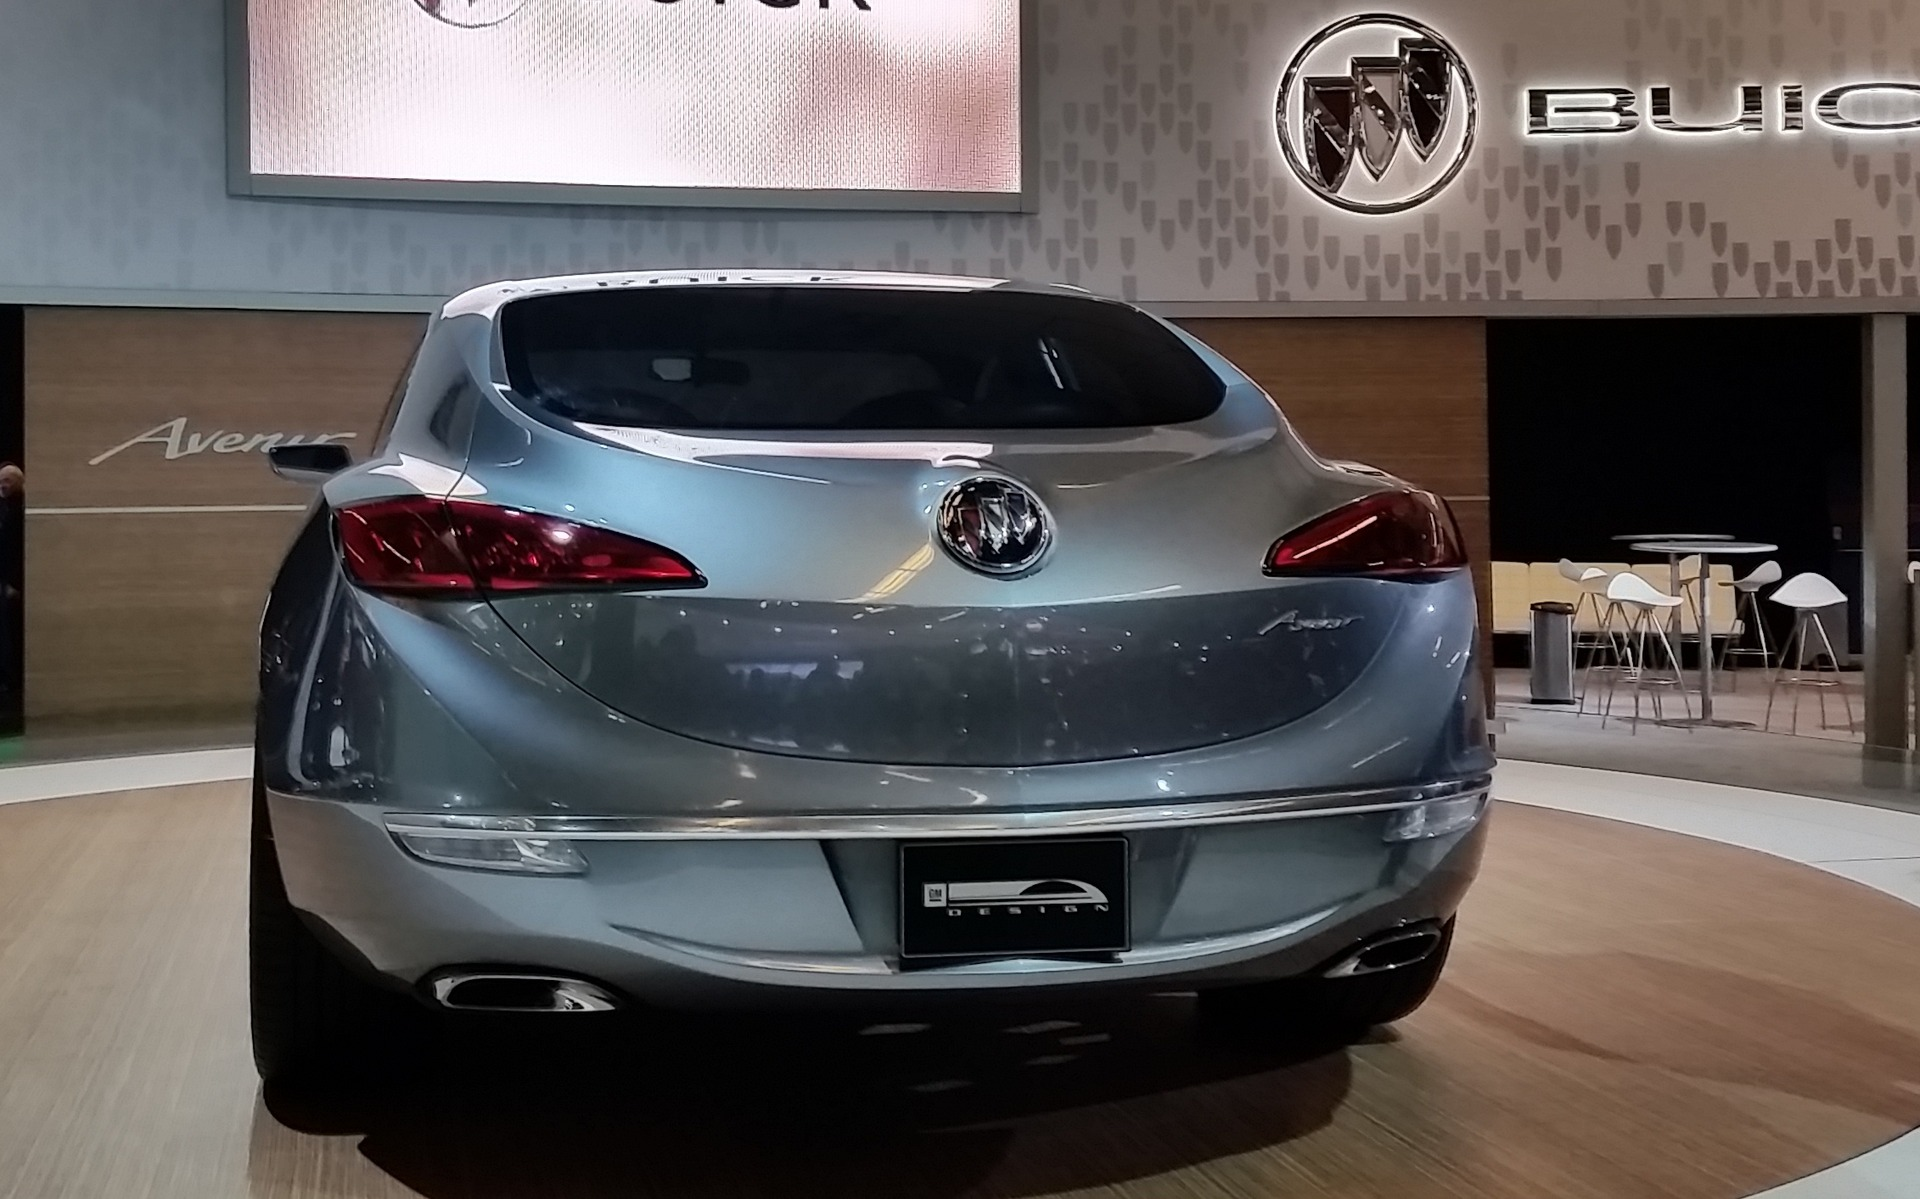 Buick Avenir Concept The Brand S Future 4 13